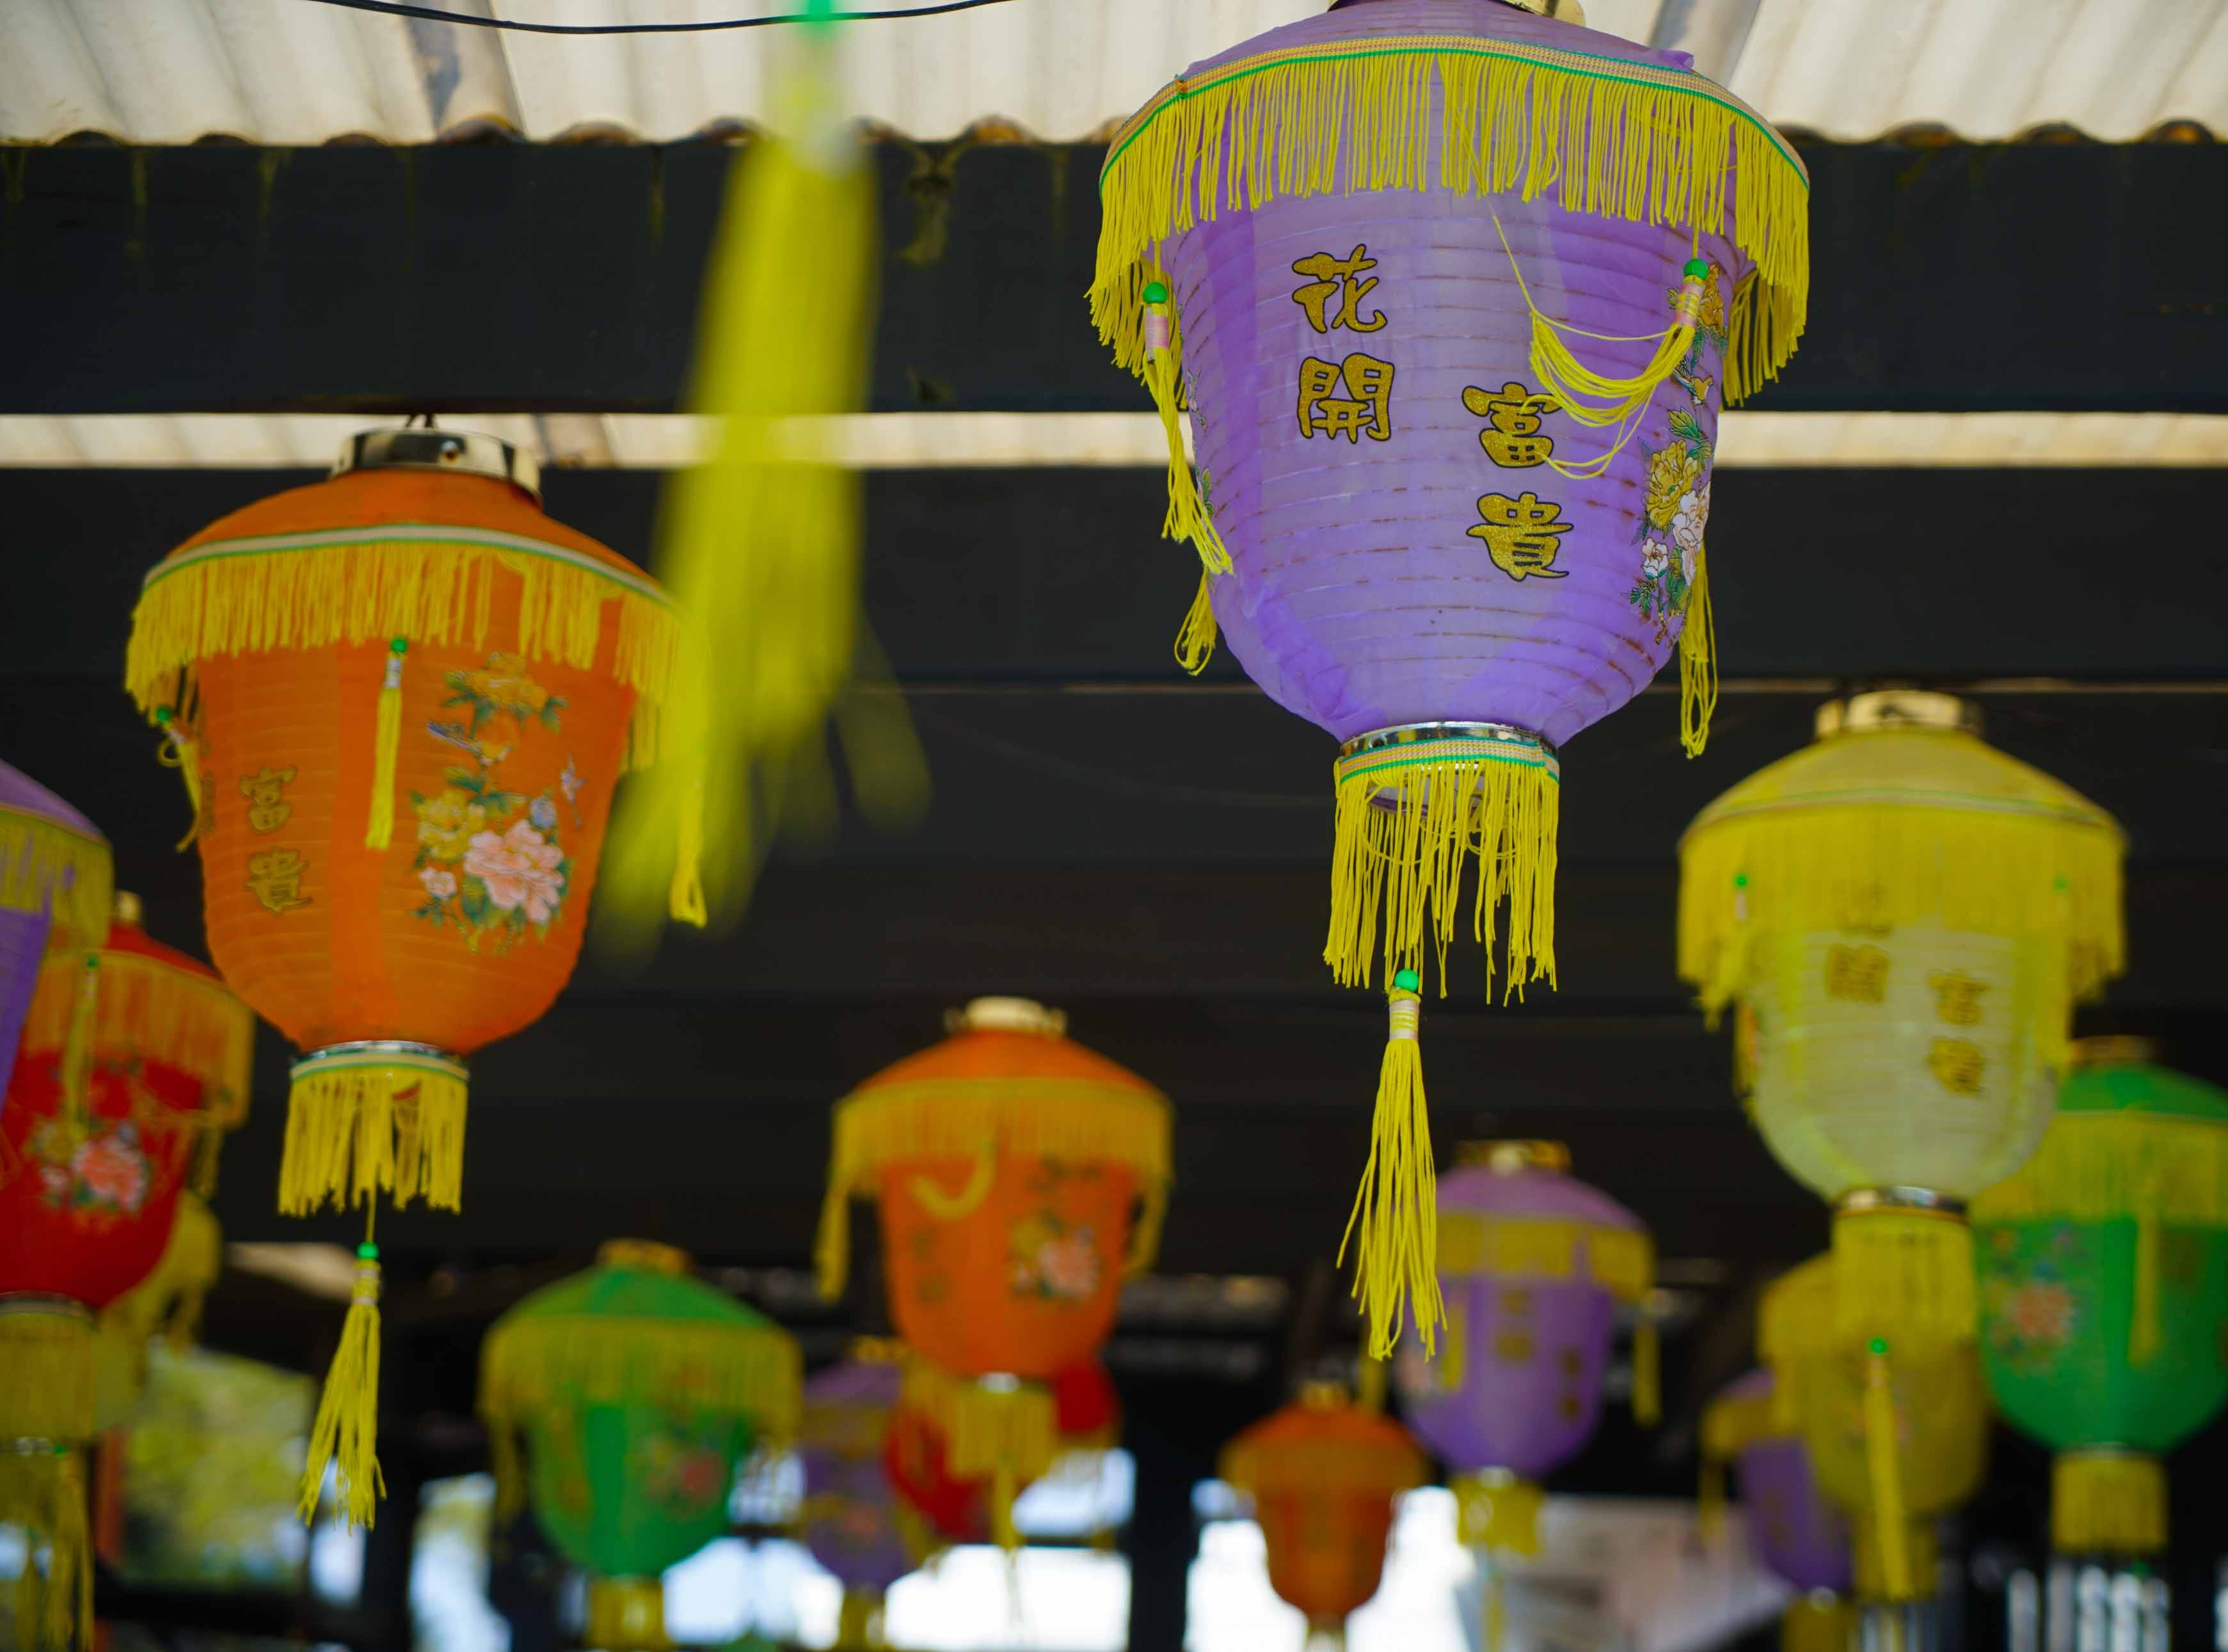 Lanterns hang year round outside on the patio at Serendipity Restaurant that overlooks Indian River.